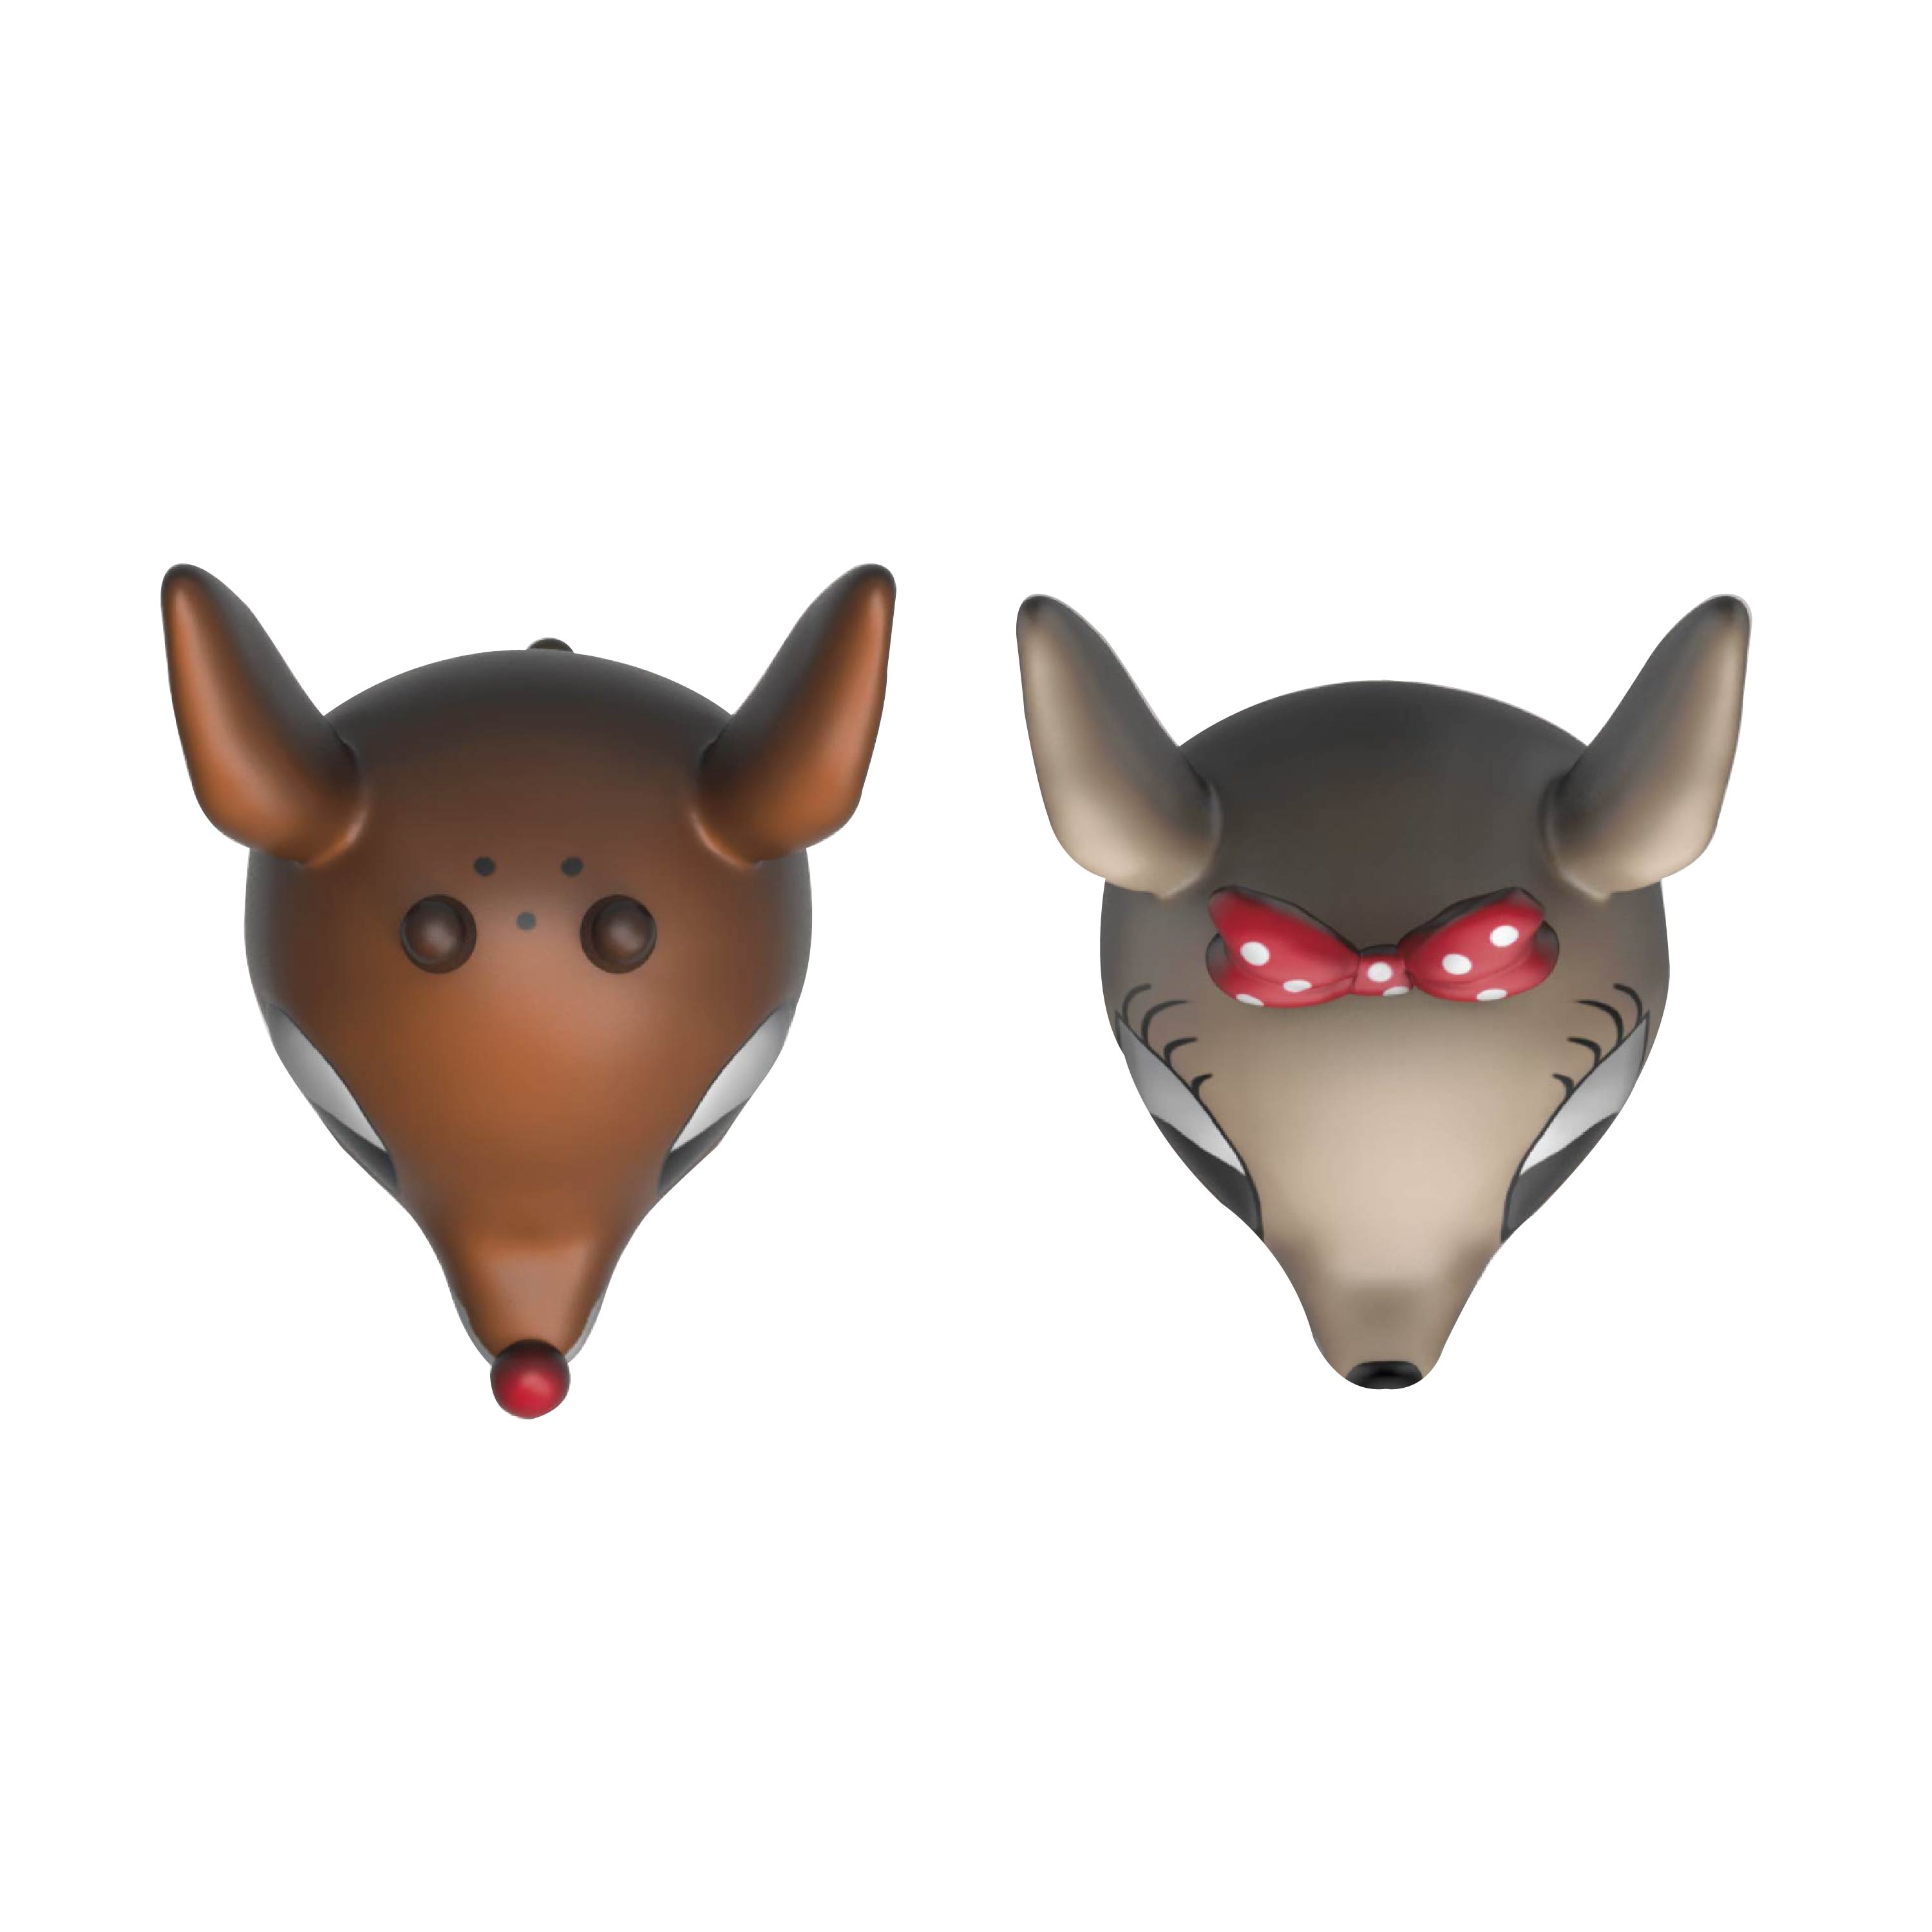 Rudolph the Red-Nosed Reindeer Salt and Pepper Shaker Set, Rudolph & Clarice, 2-piece set slideshow image 6